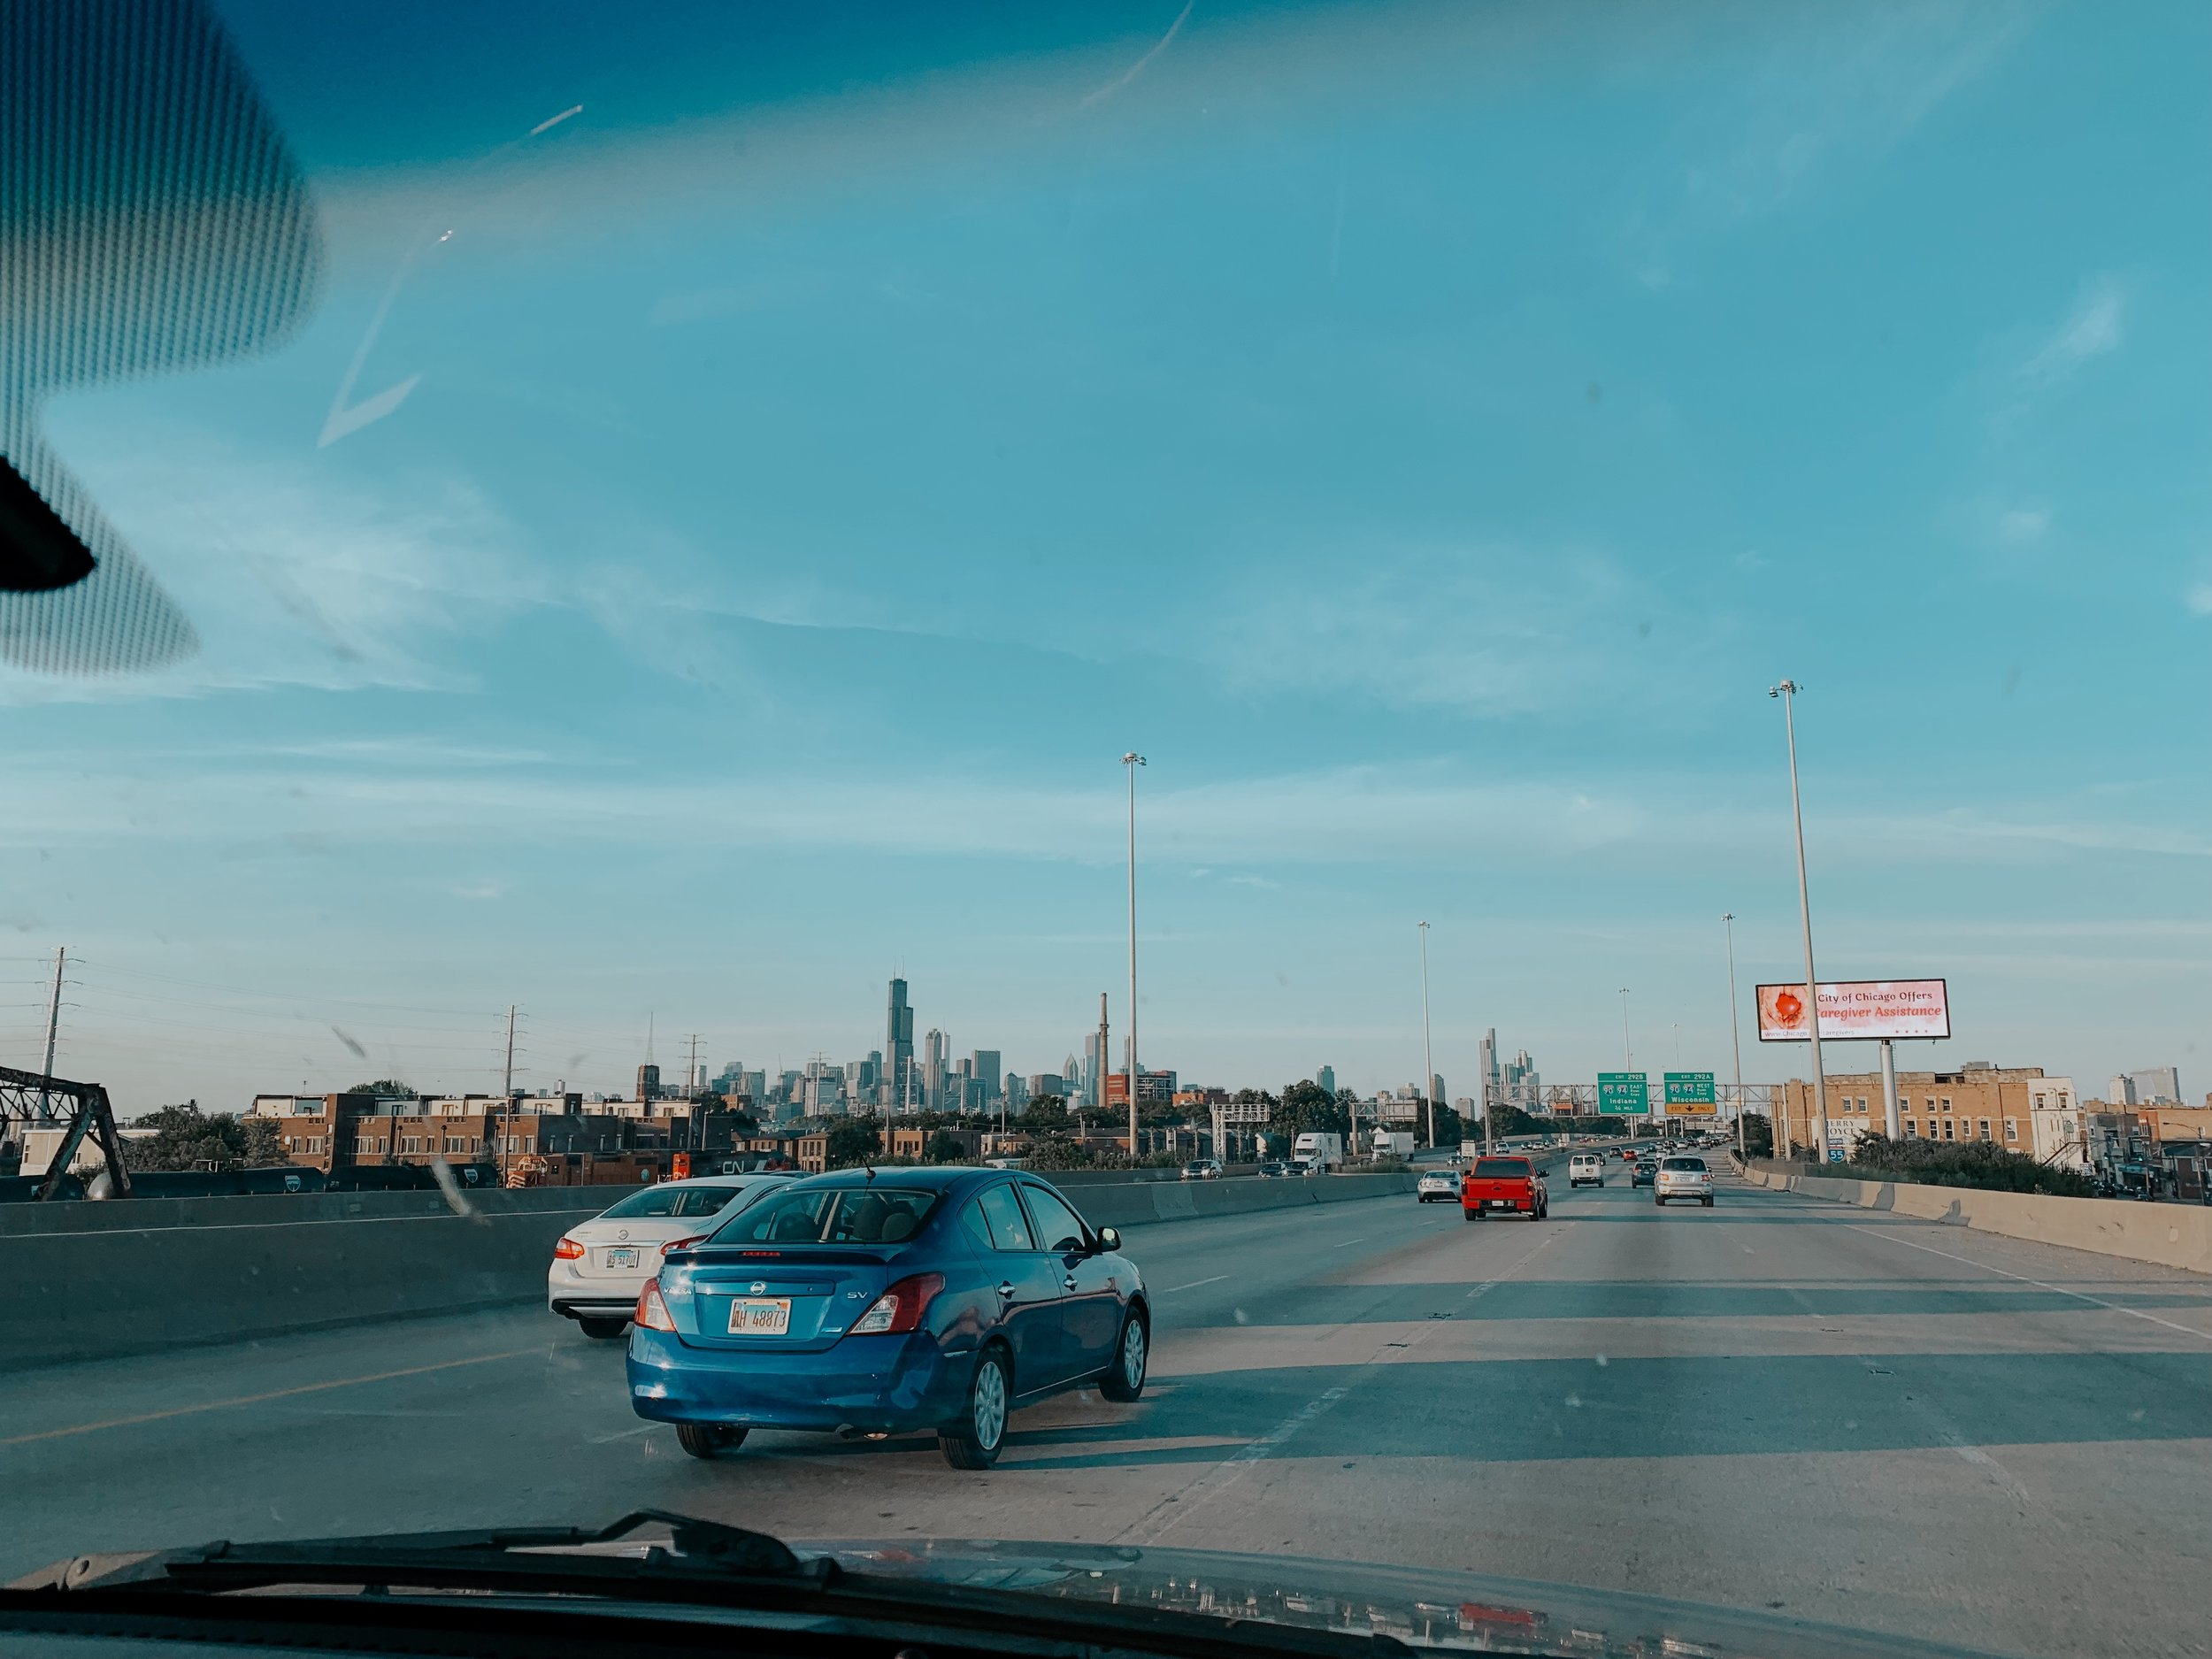 Driving into Chicago was so surreal. It finally hit me that we weren't going home and that Edwin and i really were about to start a whole new chapter of our lives together.